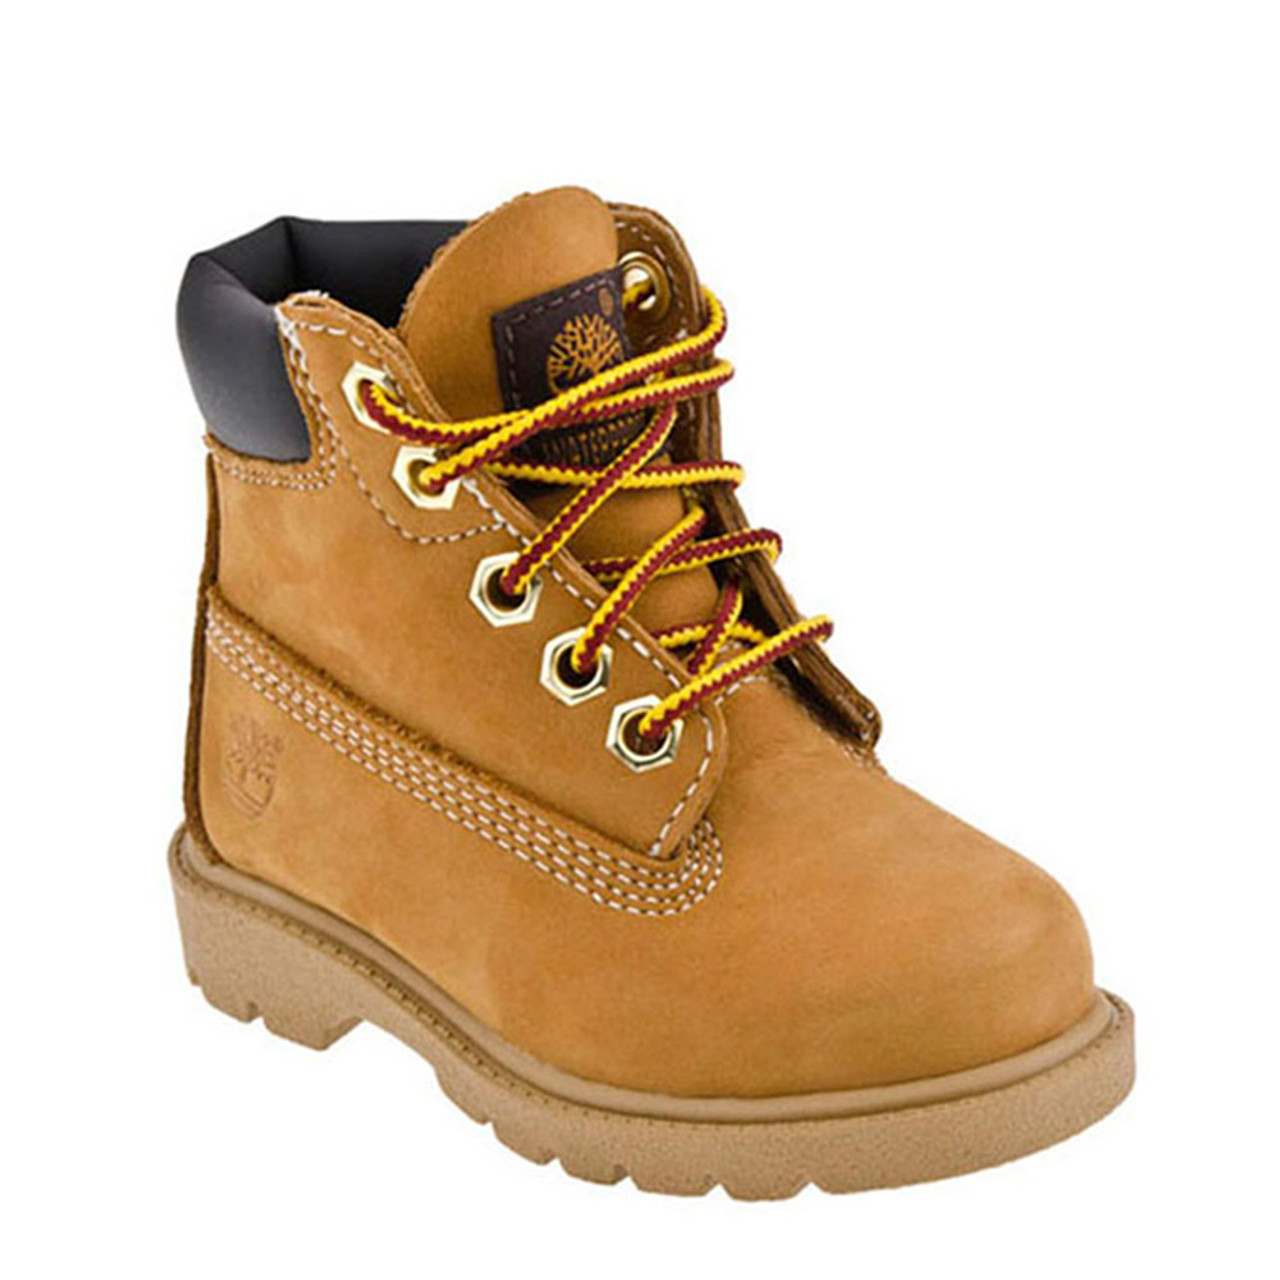 Timberland 10860 TODDLER TIMS BOOTS